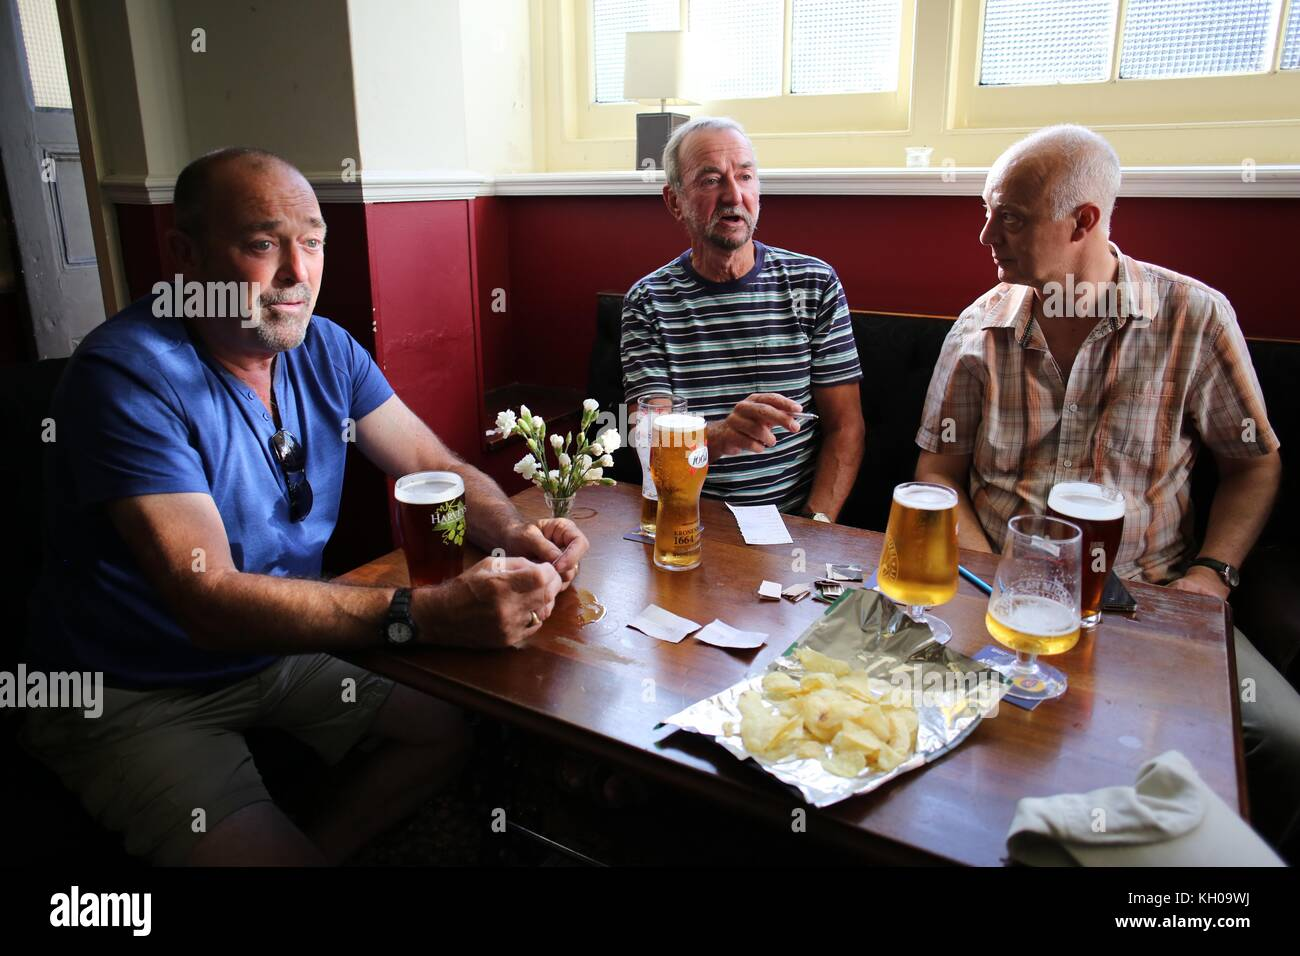 Regulars enjoying themselves in the Cleveland Arms Pub in Brighton. Picture by James Boardman - Stock Image